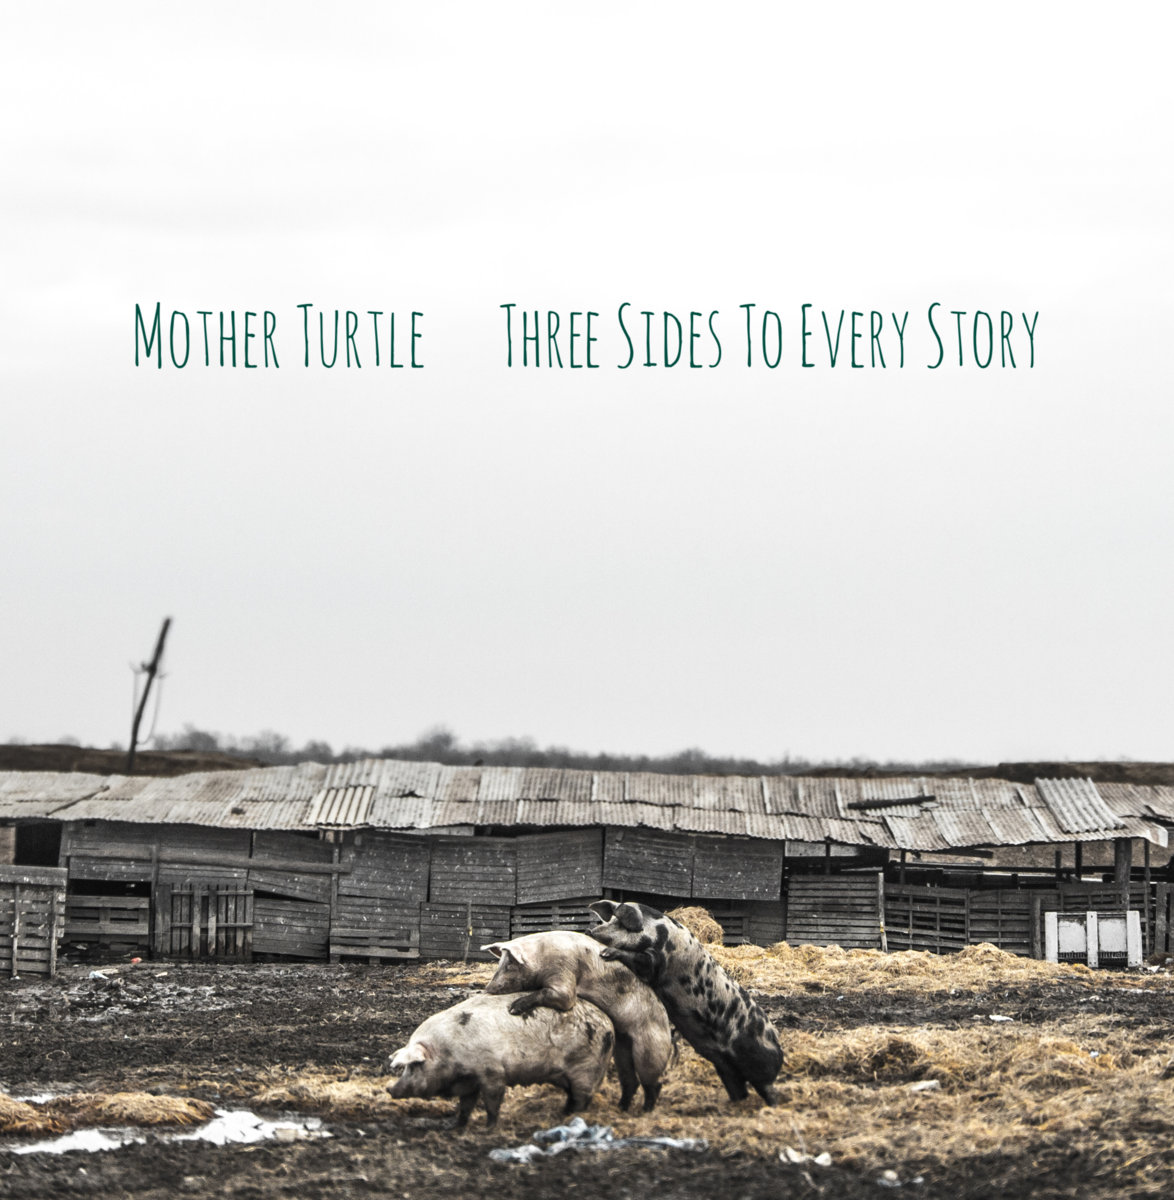 mother turtle three sides to every story